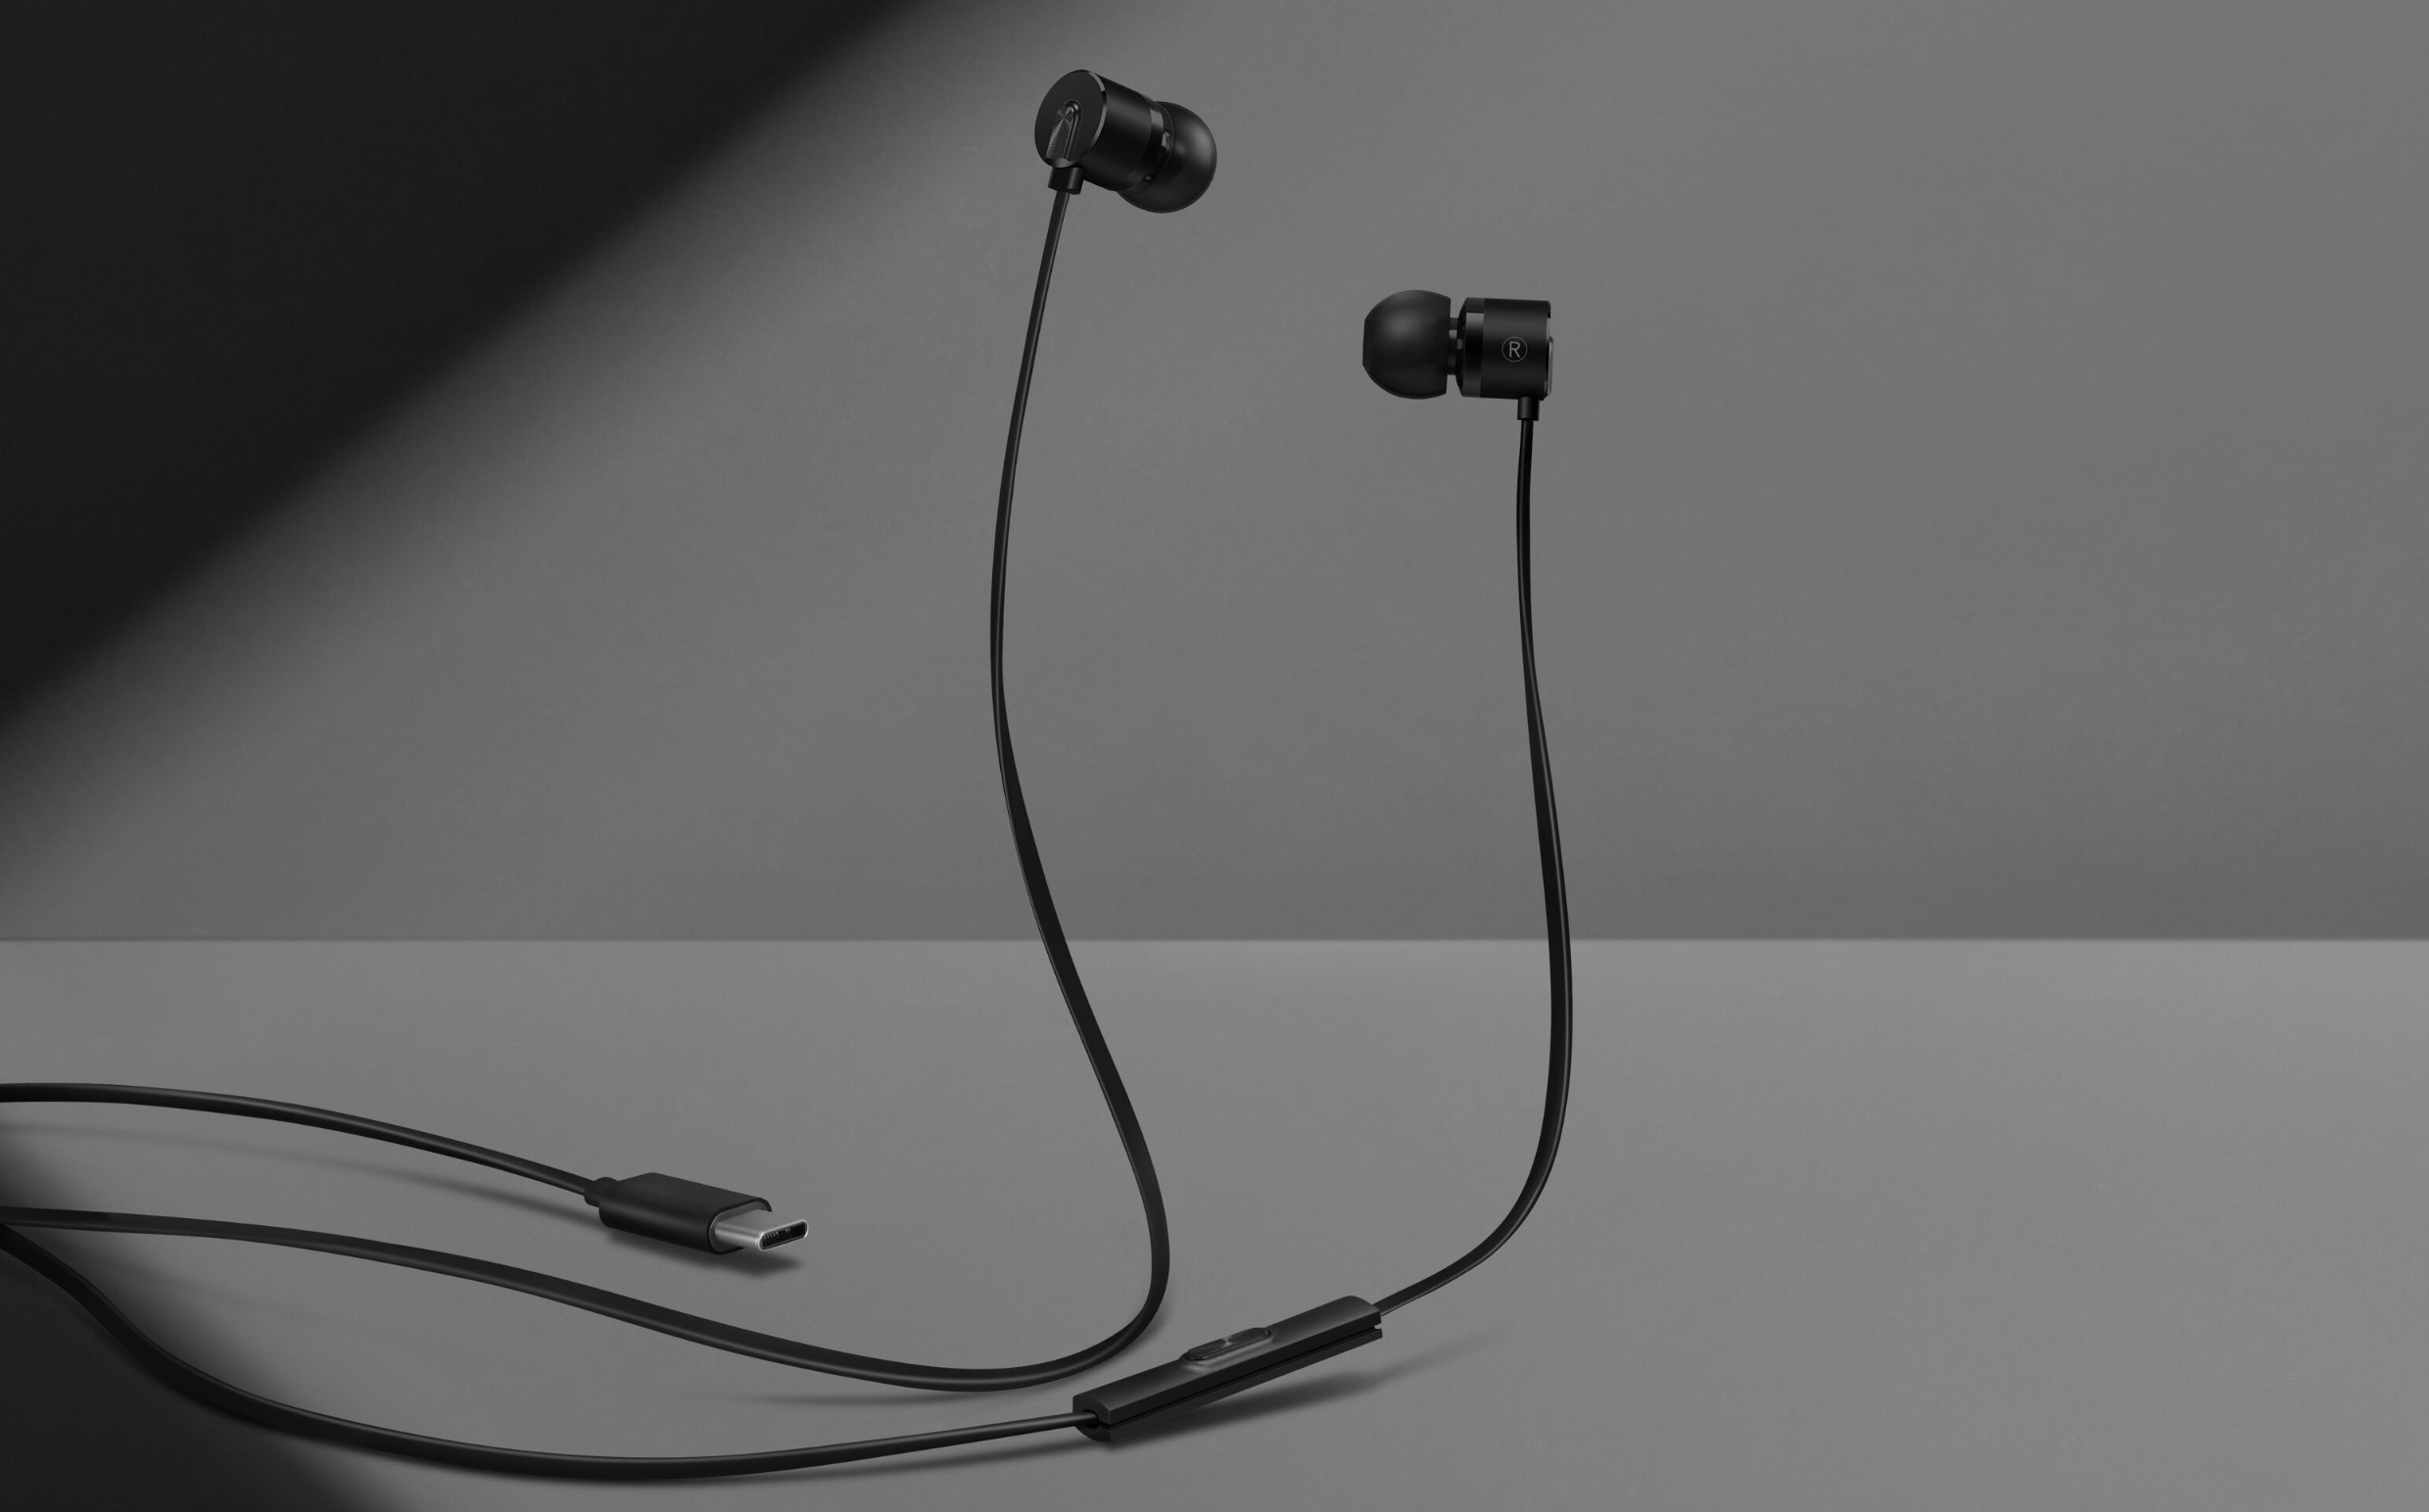 Oneplus Announces Usb C Earbuds Because 6t Wont Have A To Audio Jack Wiring Thoughts On Leaving The Headphone Behind Friends